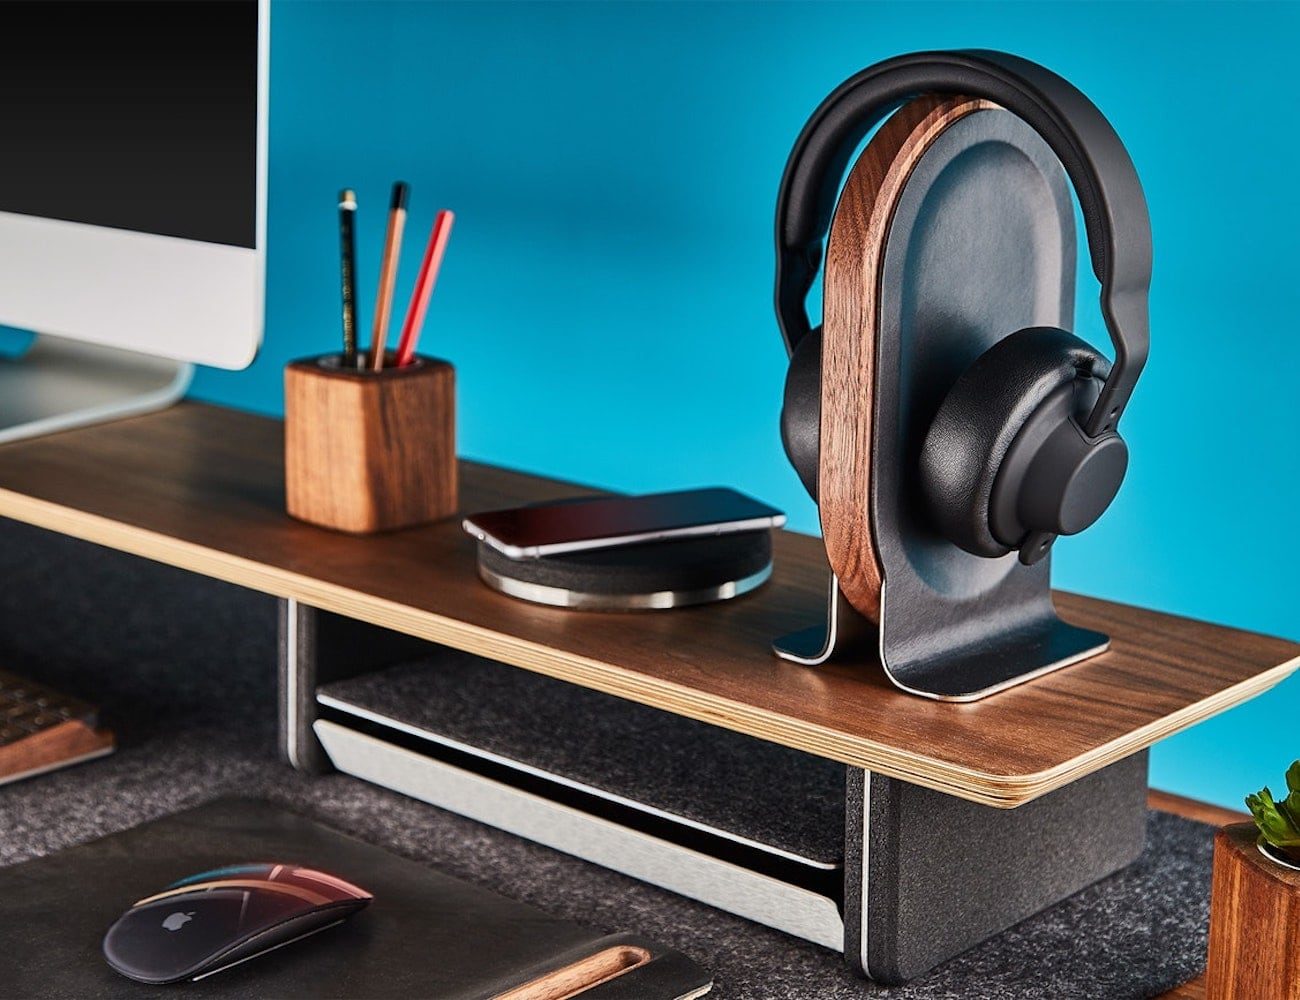 Grovemade Wood & Leather Headphone Stand reimagines headphone storage